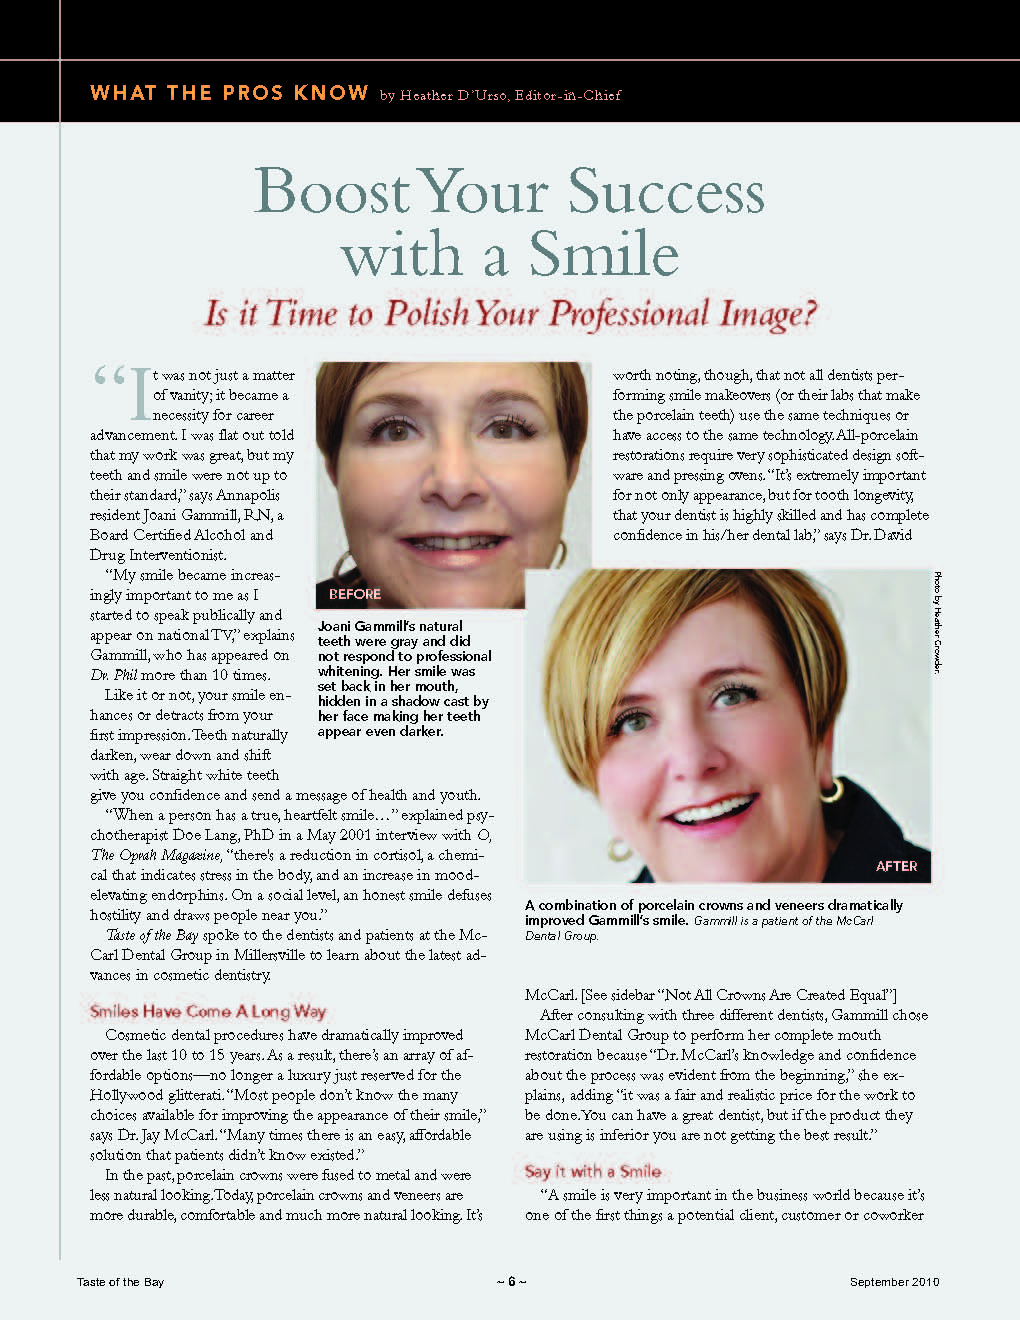 Boost Your Success with a Smile Page 1